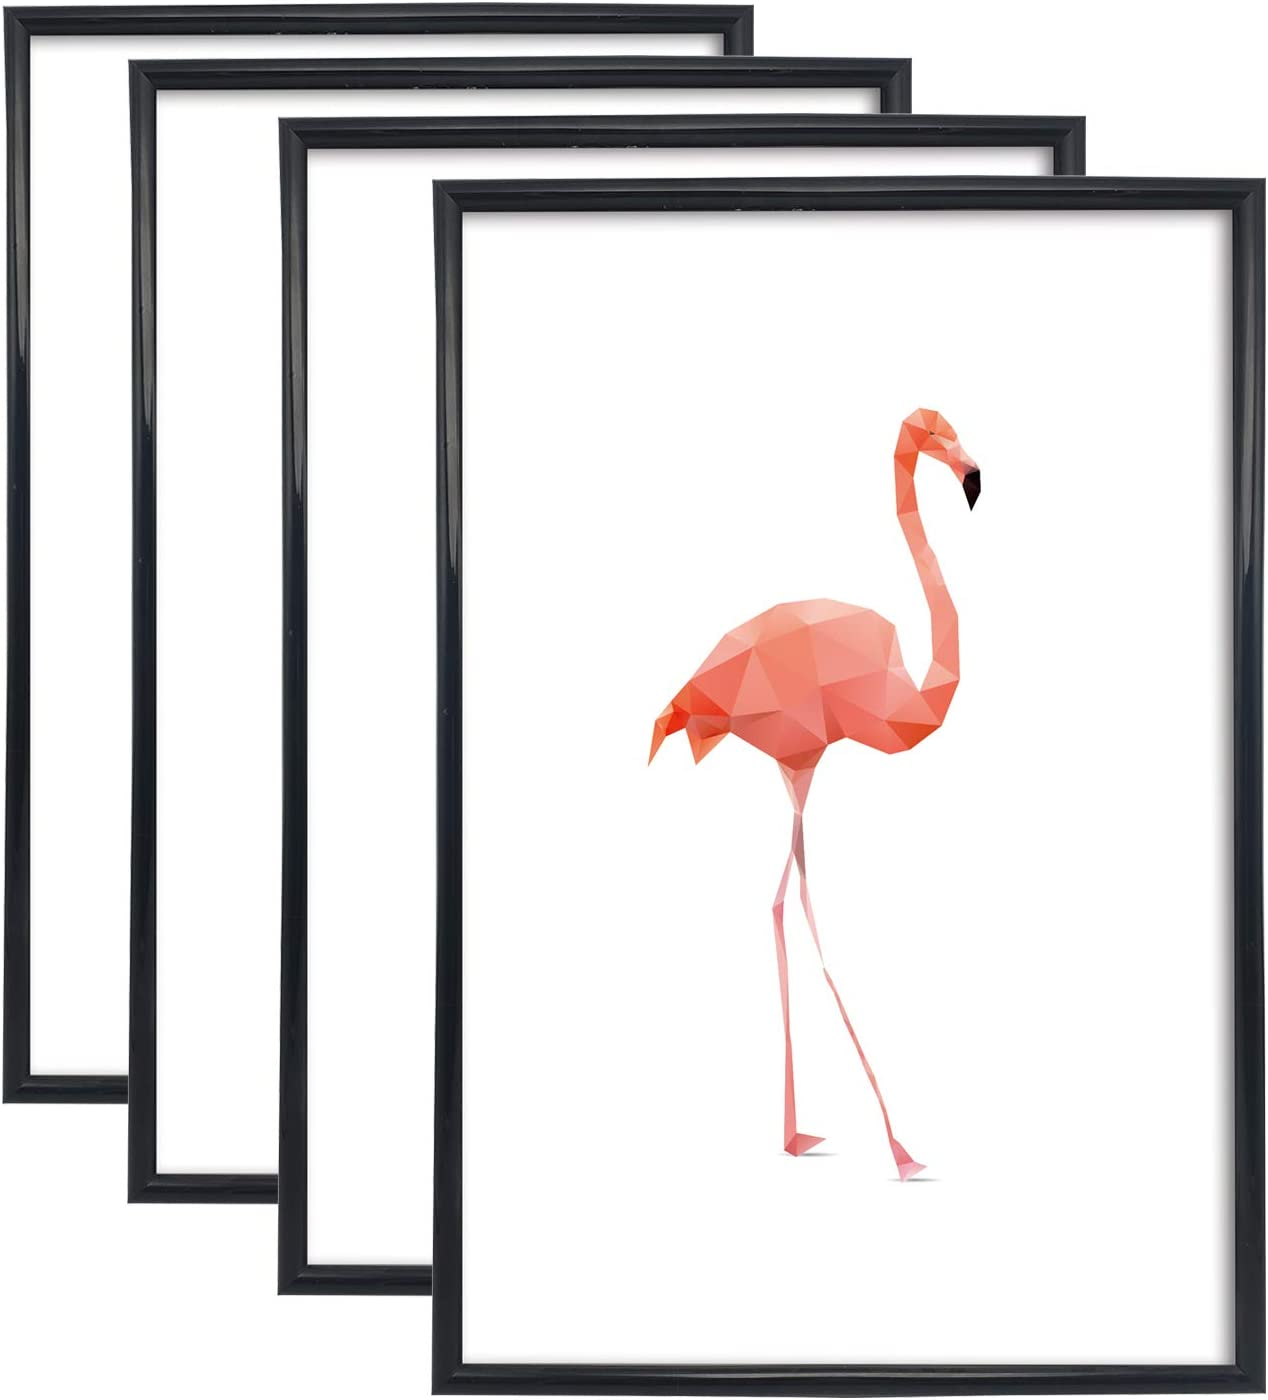 iDecorelife Frameology 4 pcs 18 x Max 50% OFF 24 Black L Excellence - inch Poster Frame